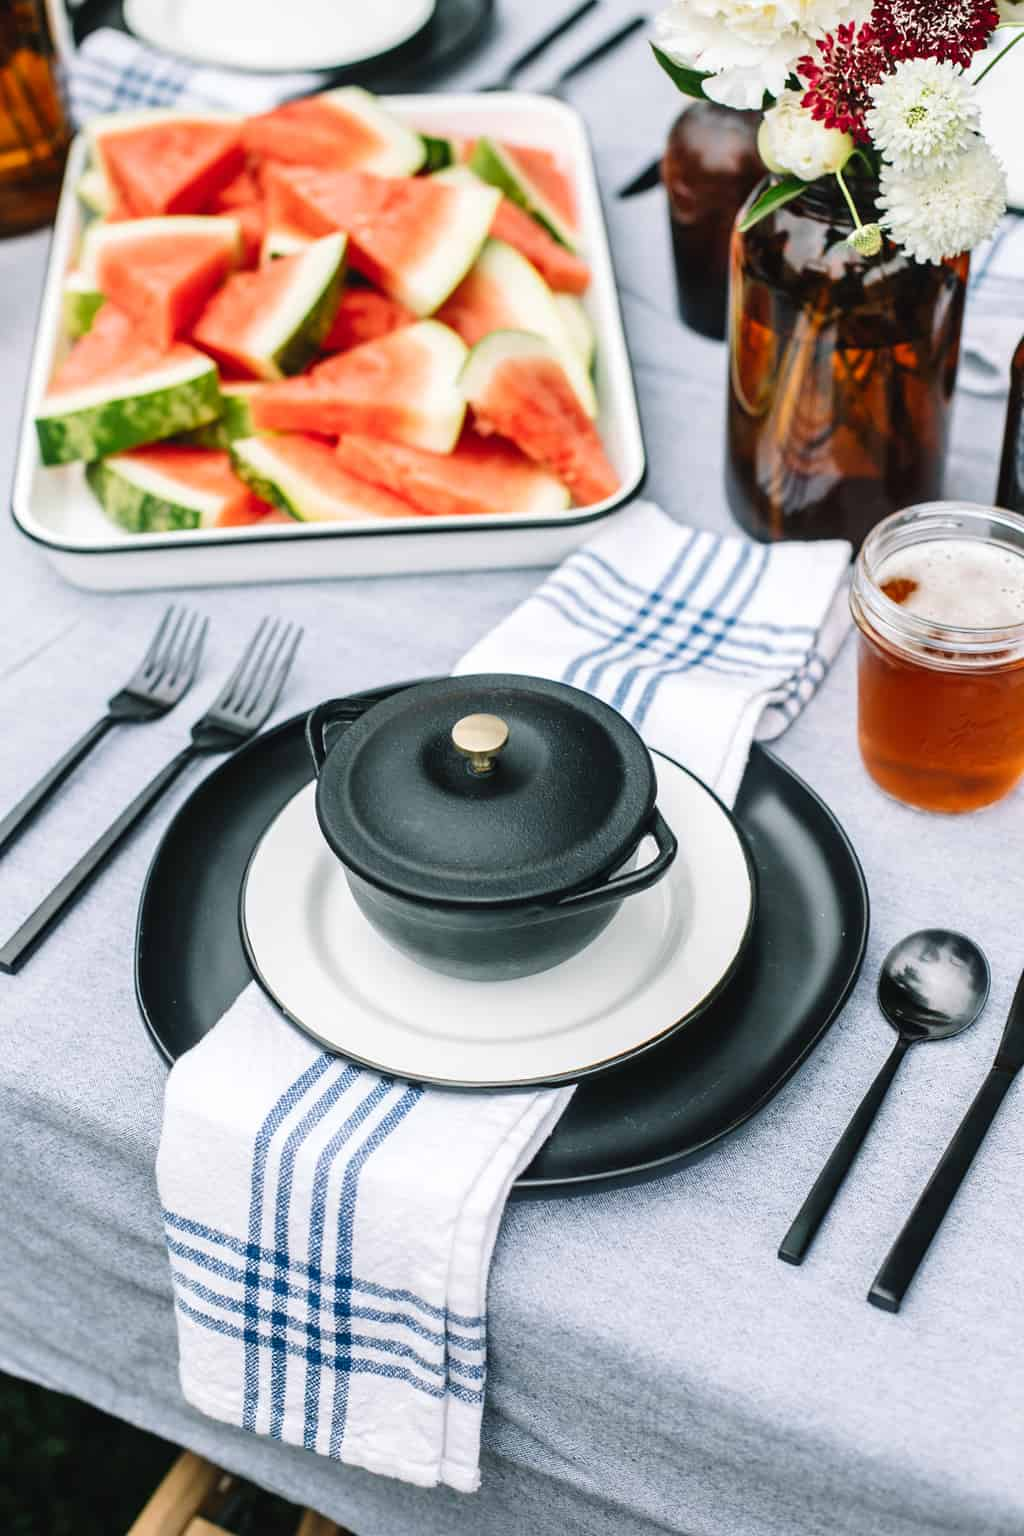 Black plate with a blue and white napkin and a platter of watermelon.